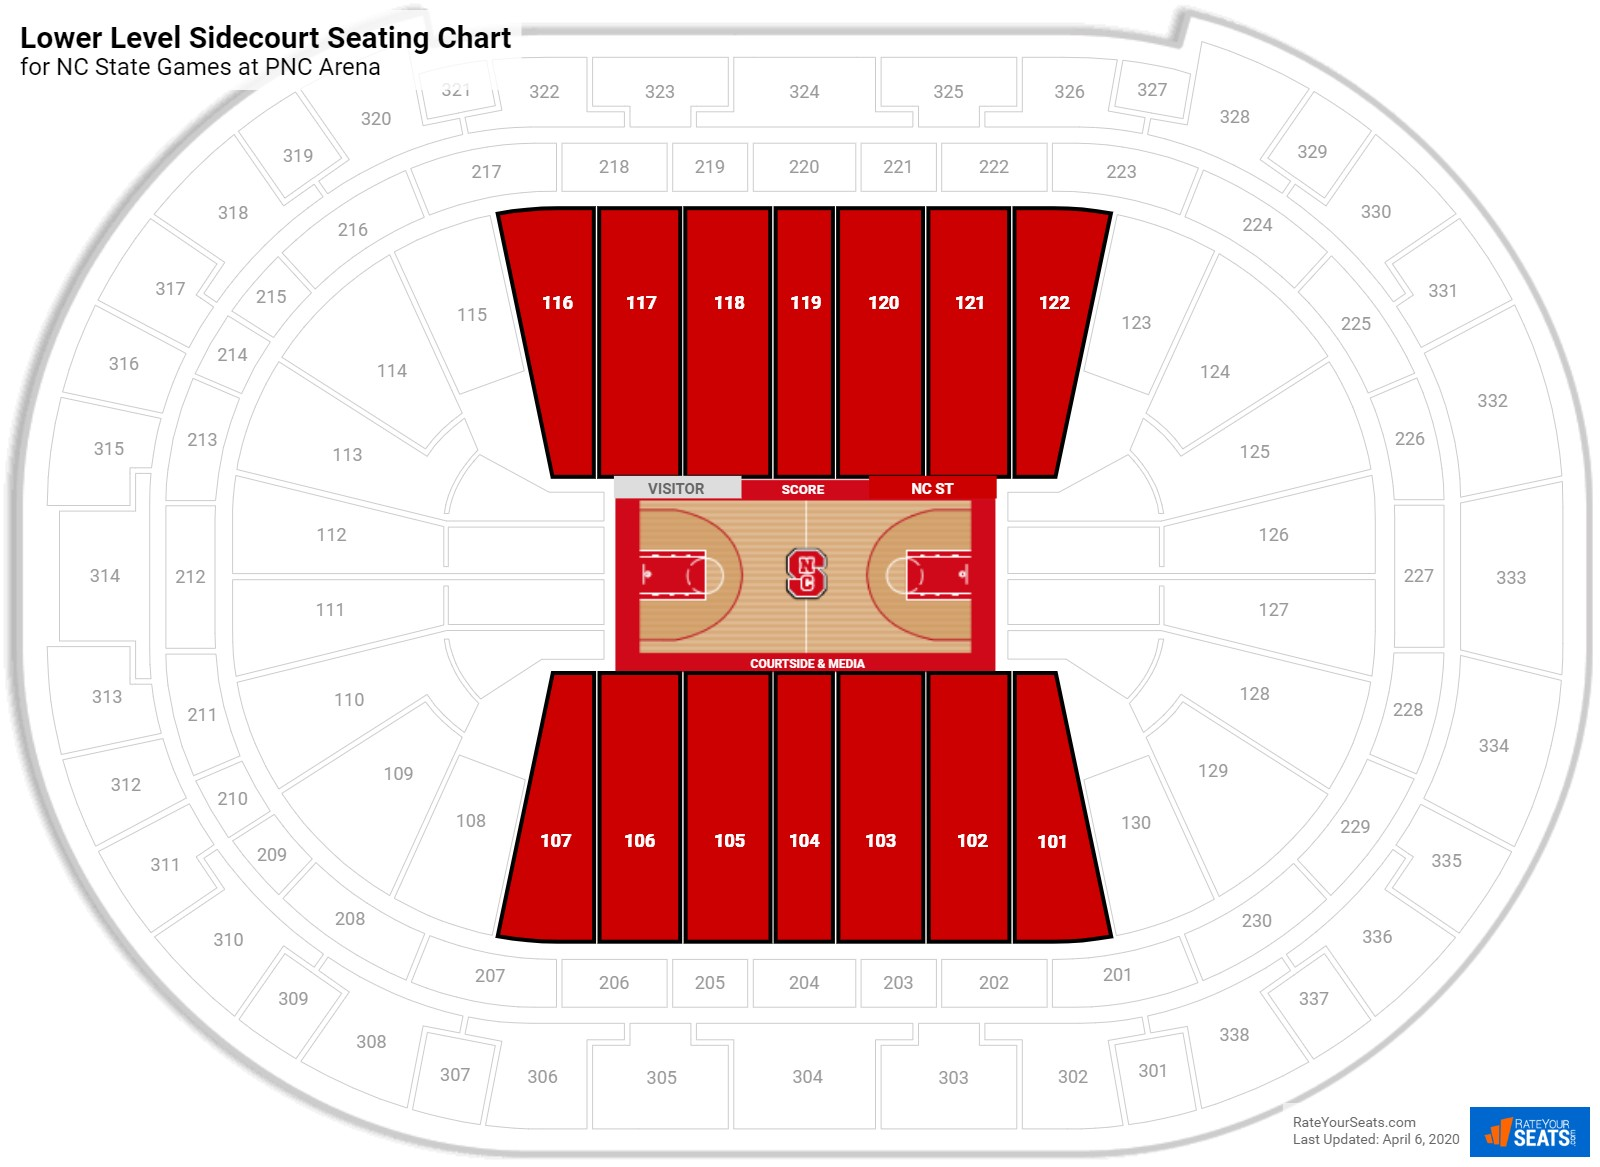 PNC Arena Lower Level Sidecourt seating chart